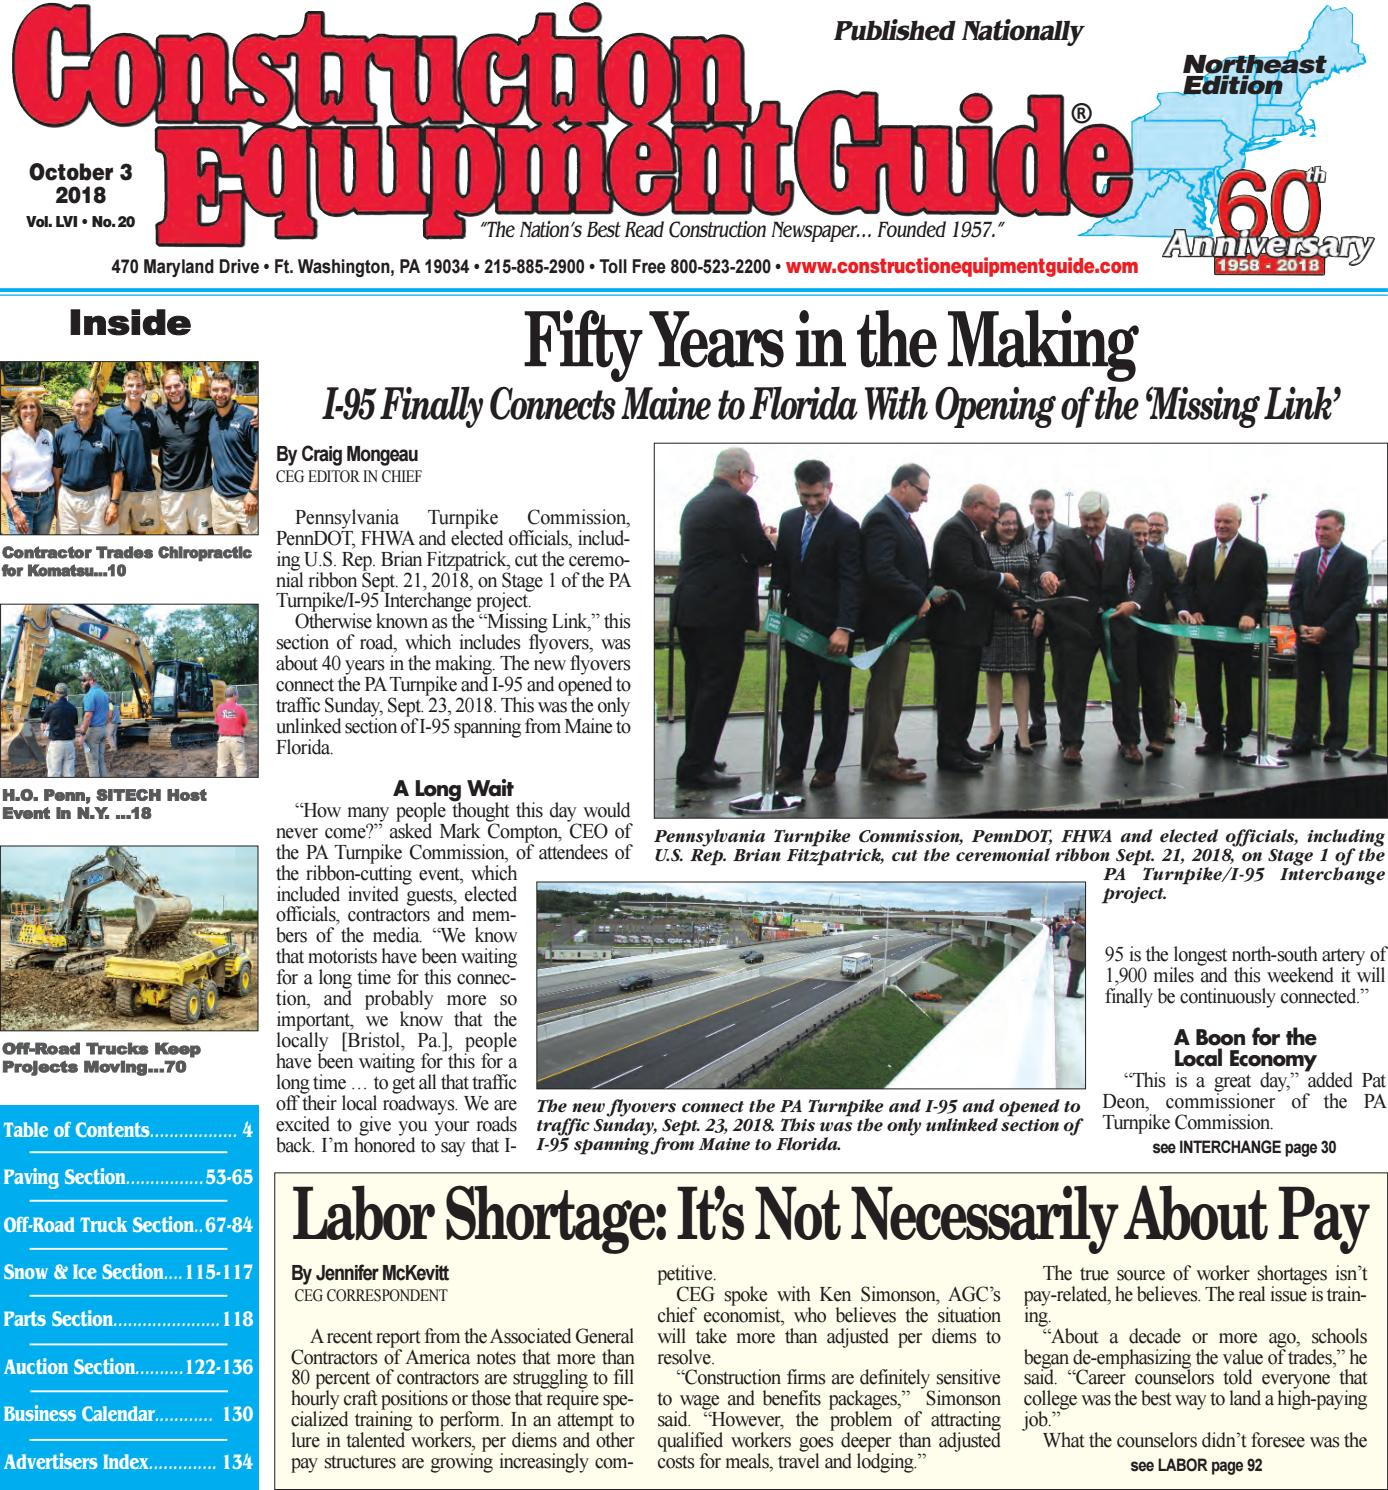 Northeast 20 October 3, 2018 by Construction Equipment Guide - issuu